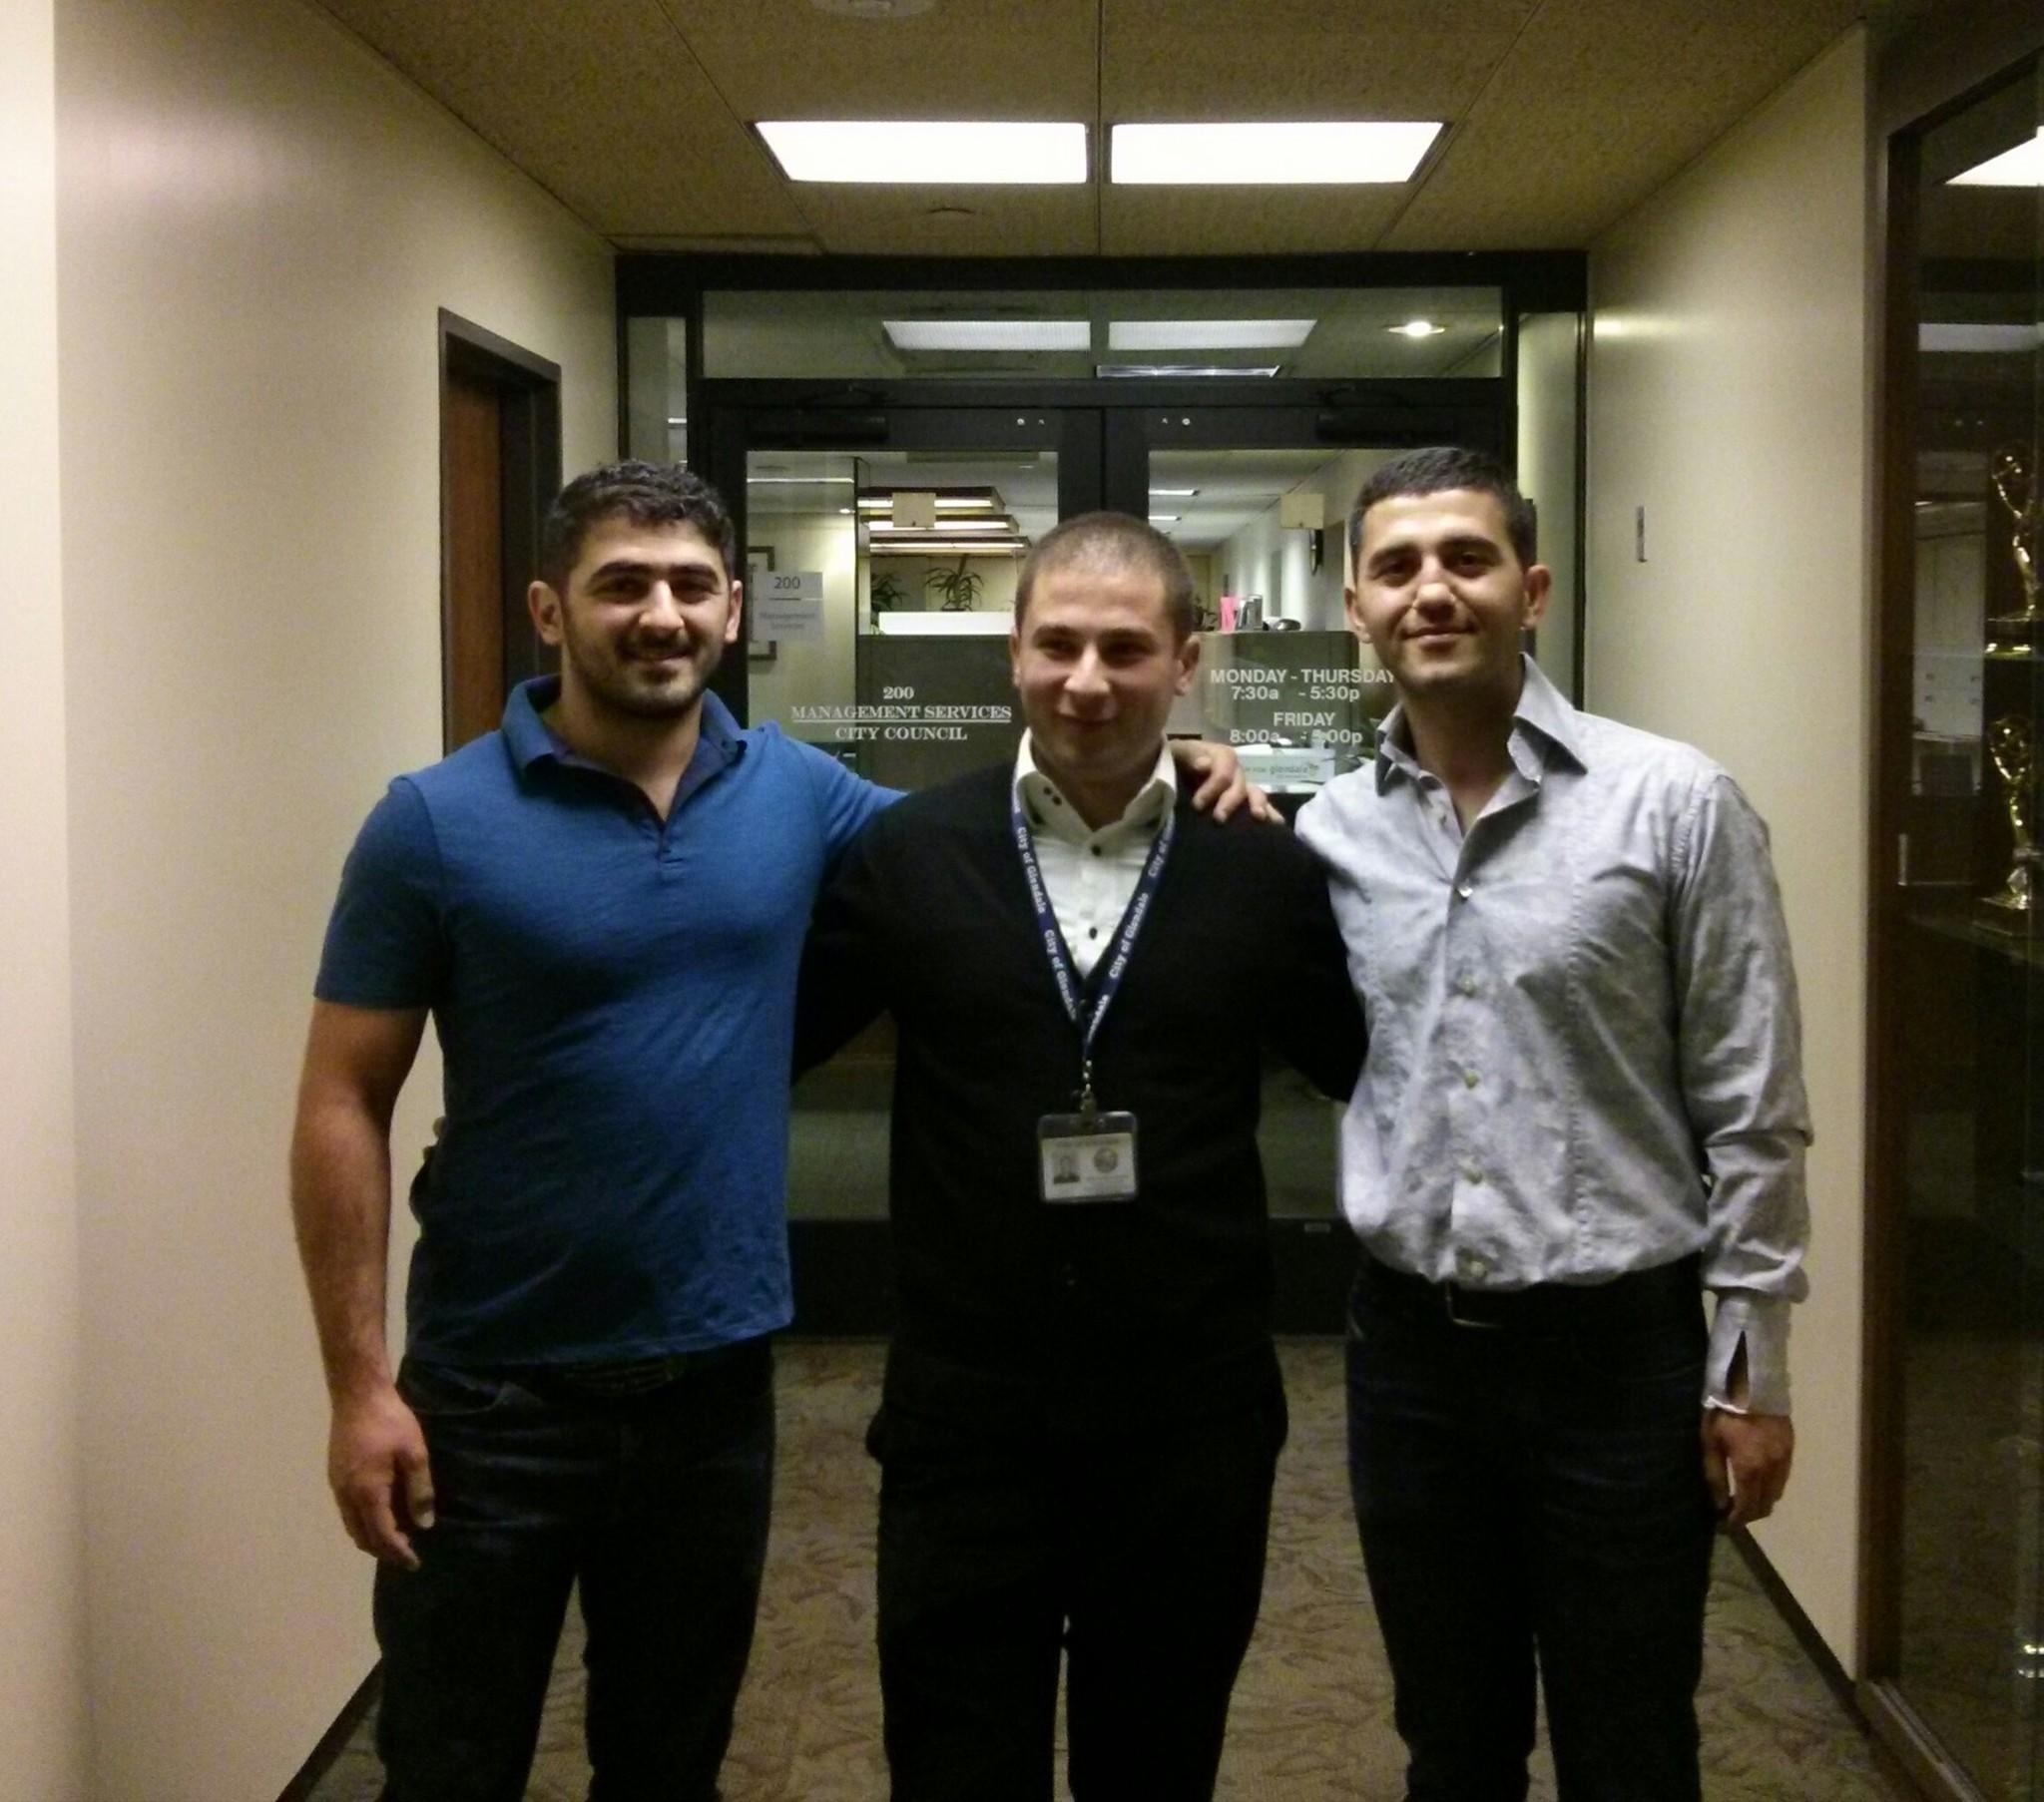 From right to left: Edgar Martirosyan, the man who delivered pizza to the Academy Awards Sunday night, poses at Glendale City Hall, alongside friend Artur Soghomyan and brother Erik Martirosyan.